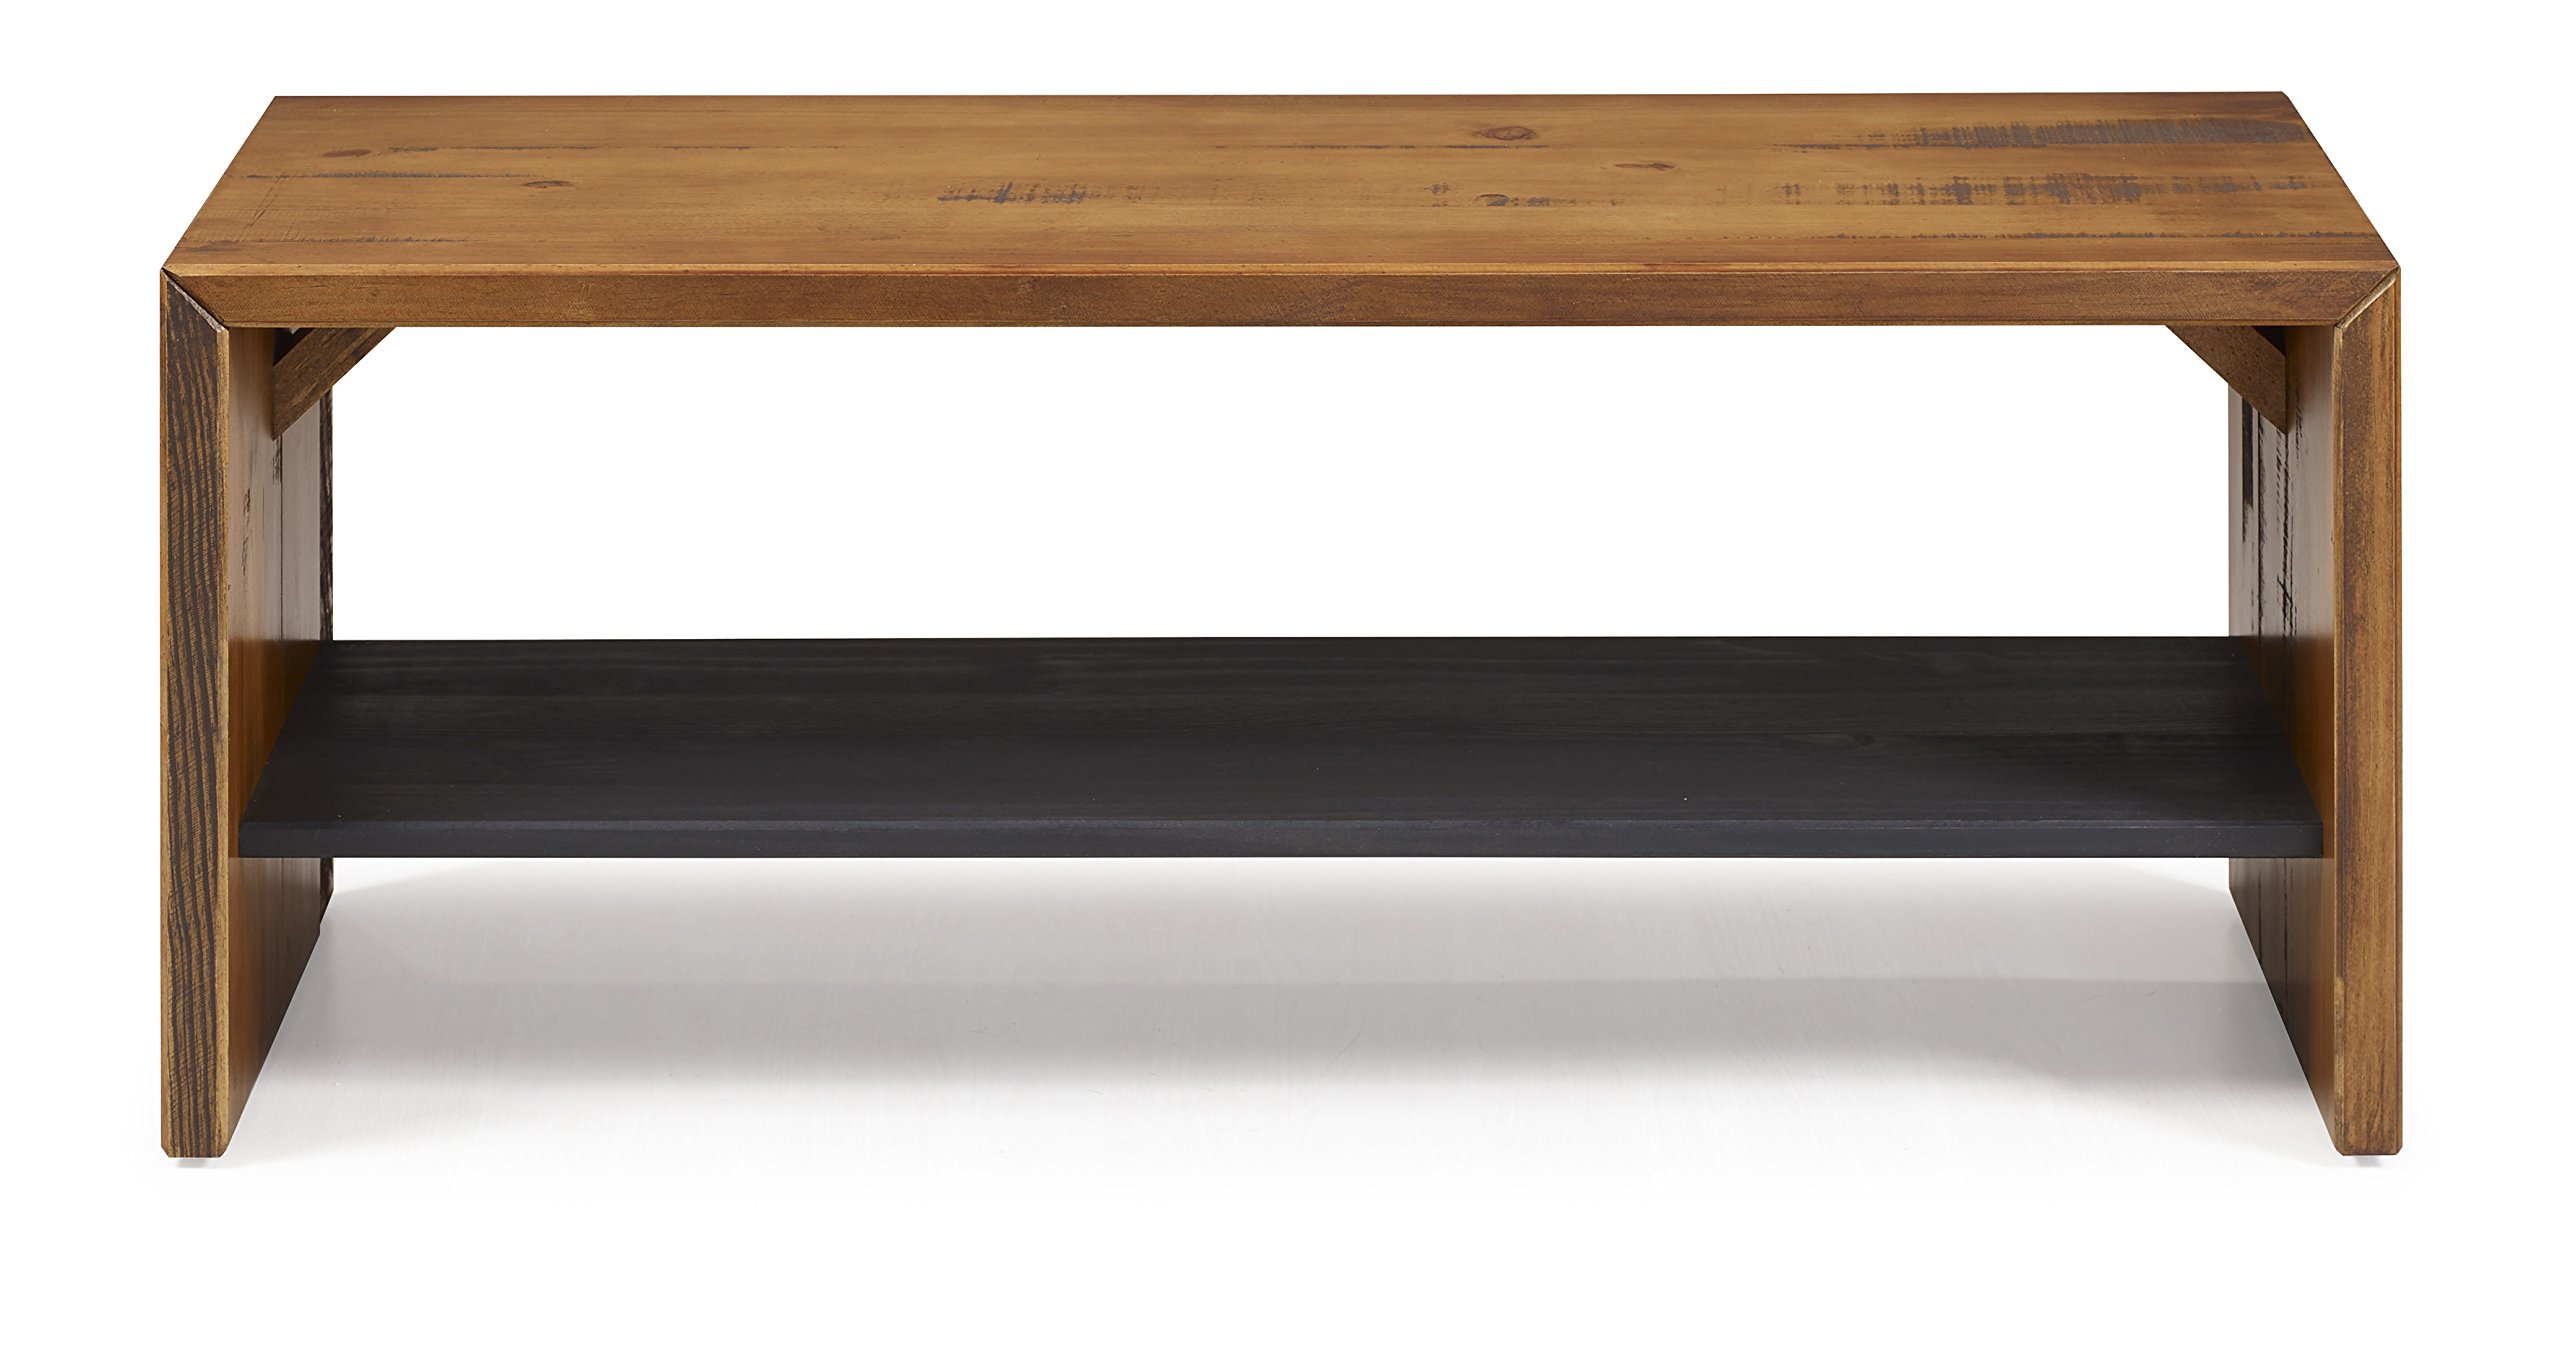 WE Furniture Reclaimed Wood Entry Bench in Amber - 42'' by WE Furniture (Image #3)